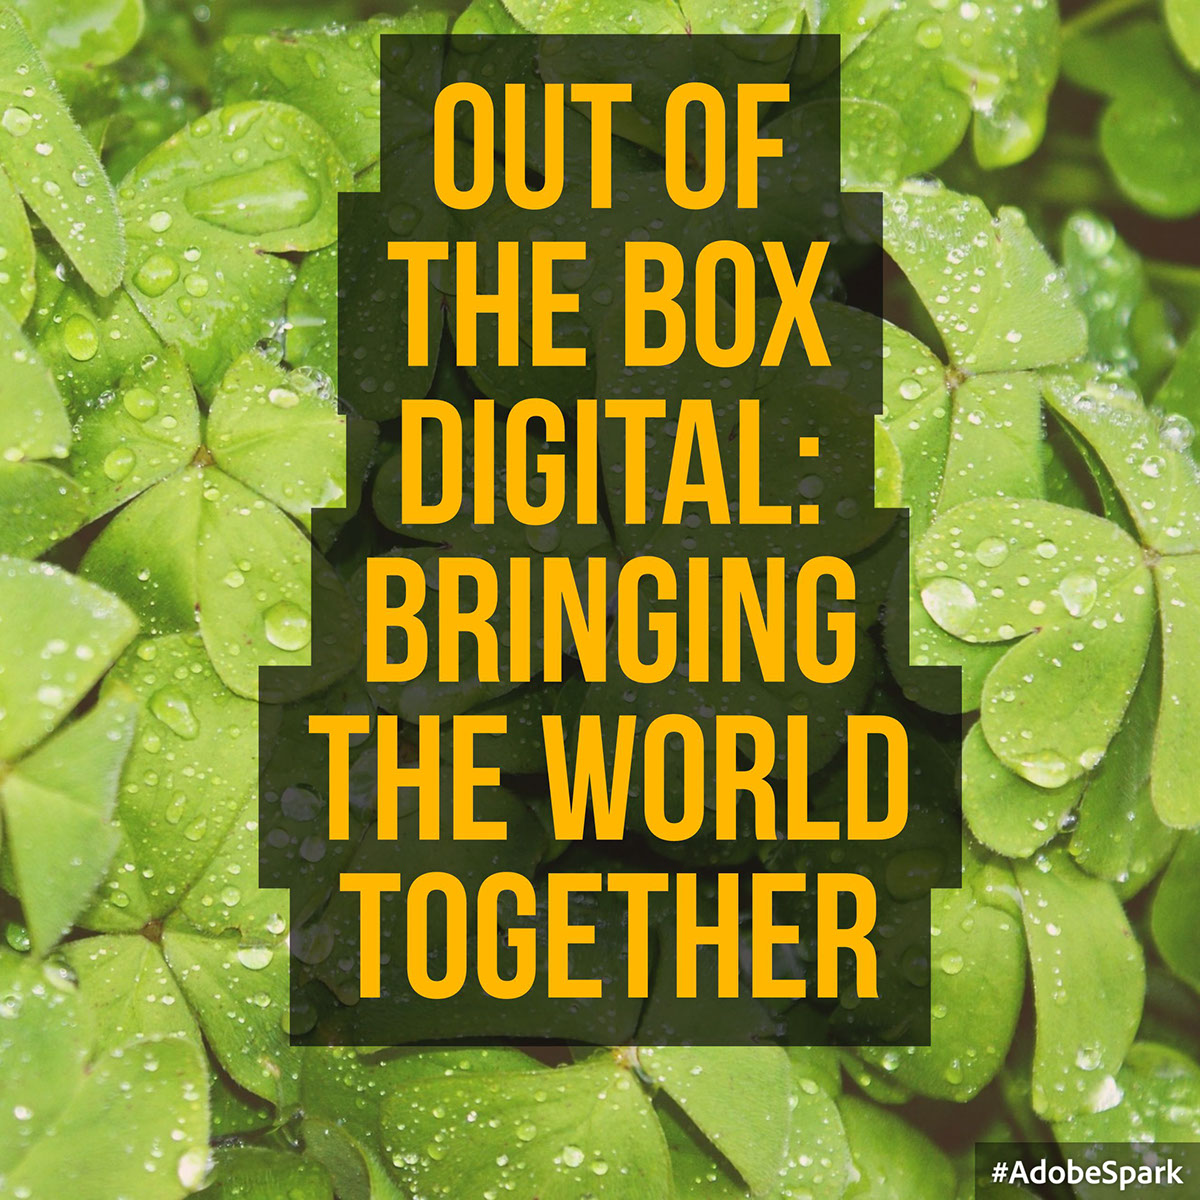 Out of the Box Digital: Bringing the World Together